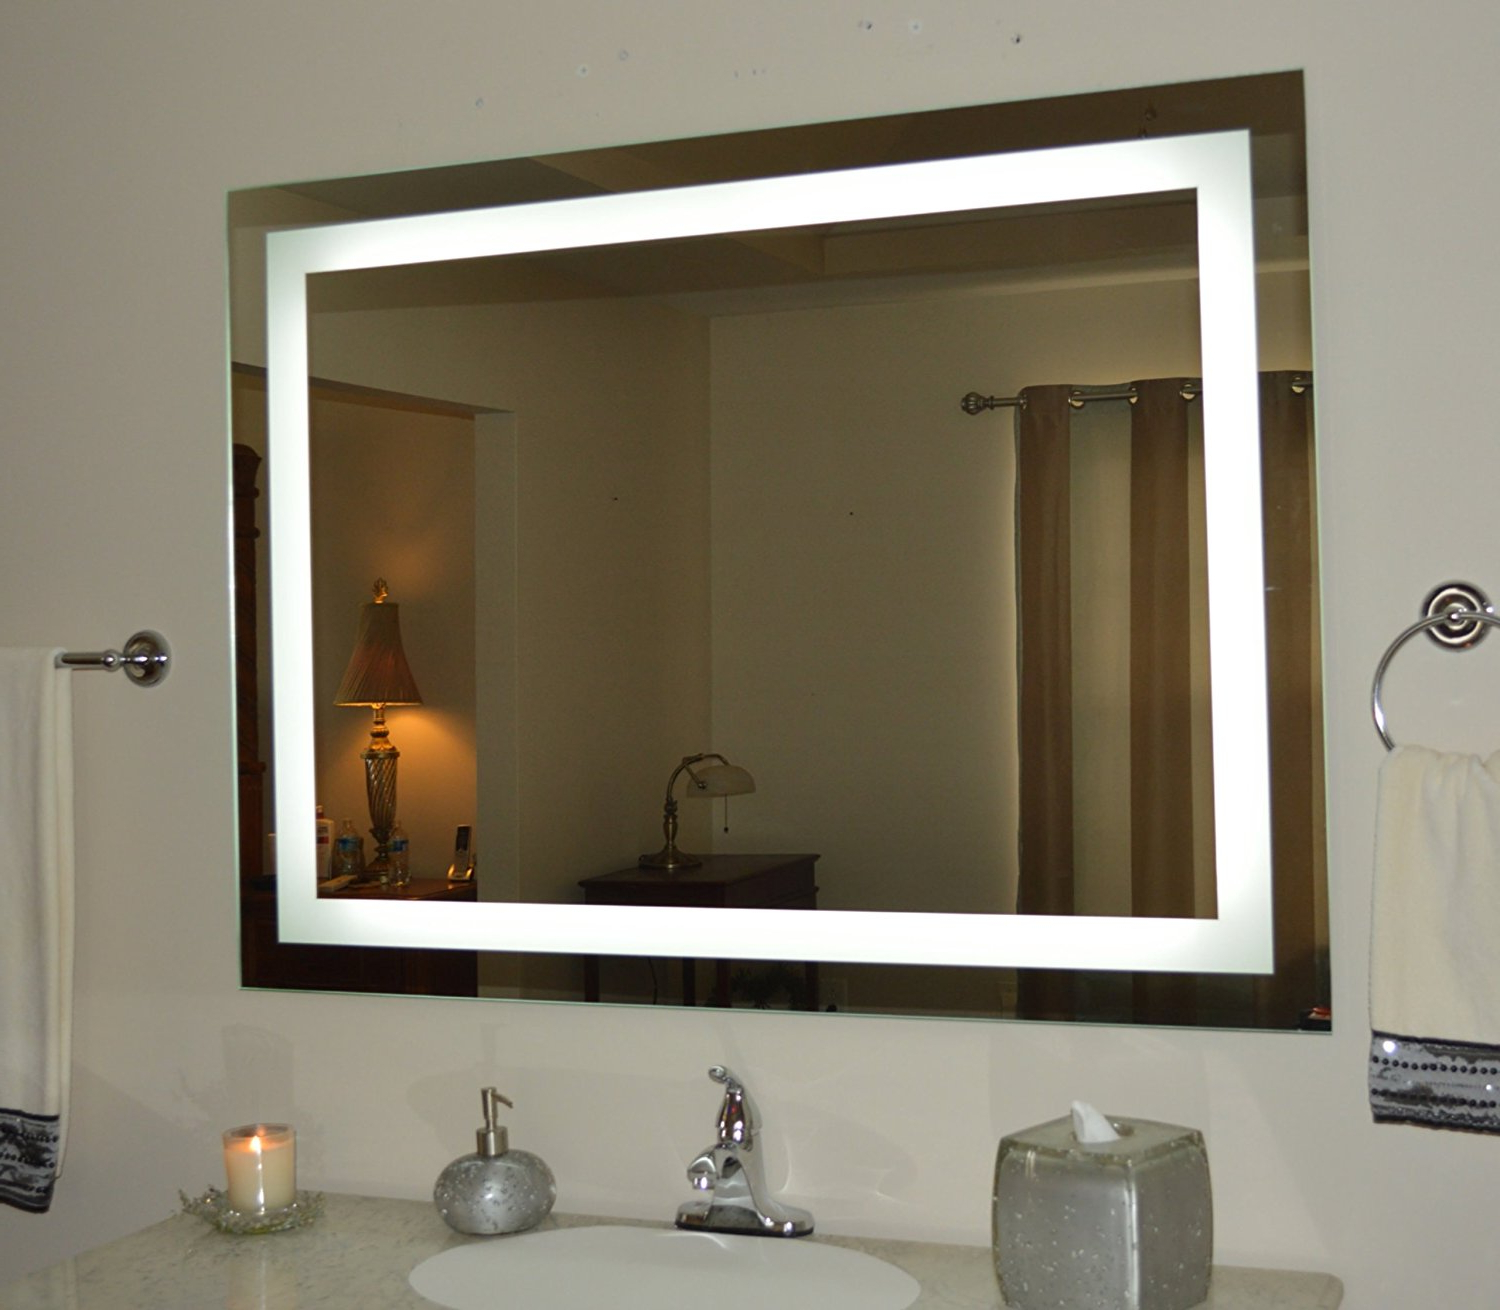 Lighted Vanity Mirror Wall — Awesome House Lighting : Perfect Within Favorite Lighted Vanity Wall Mirrors (Gallery 5 of 20)